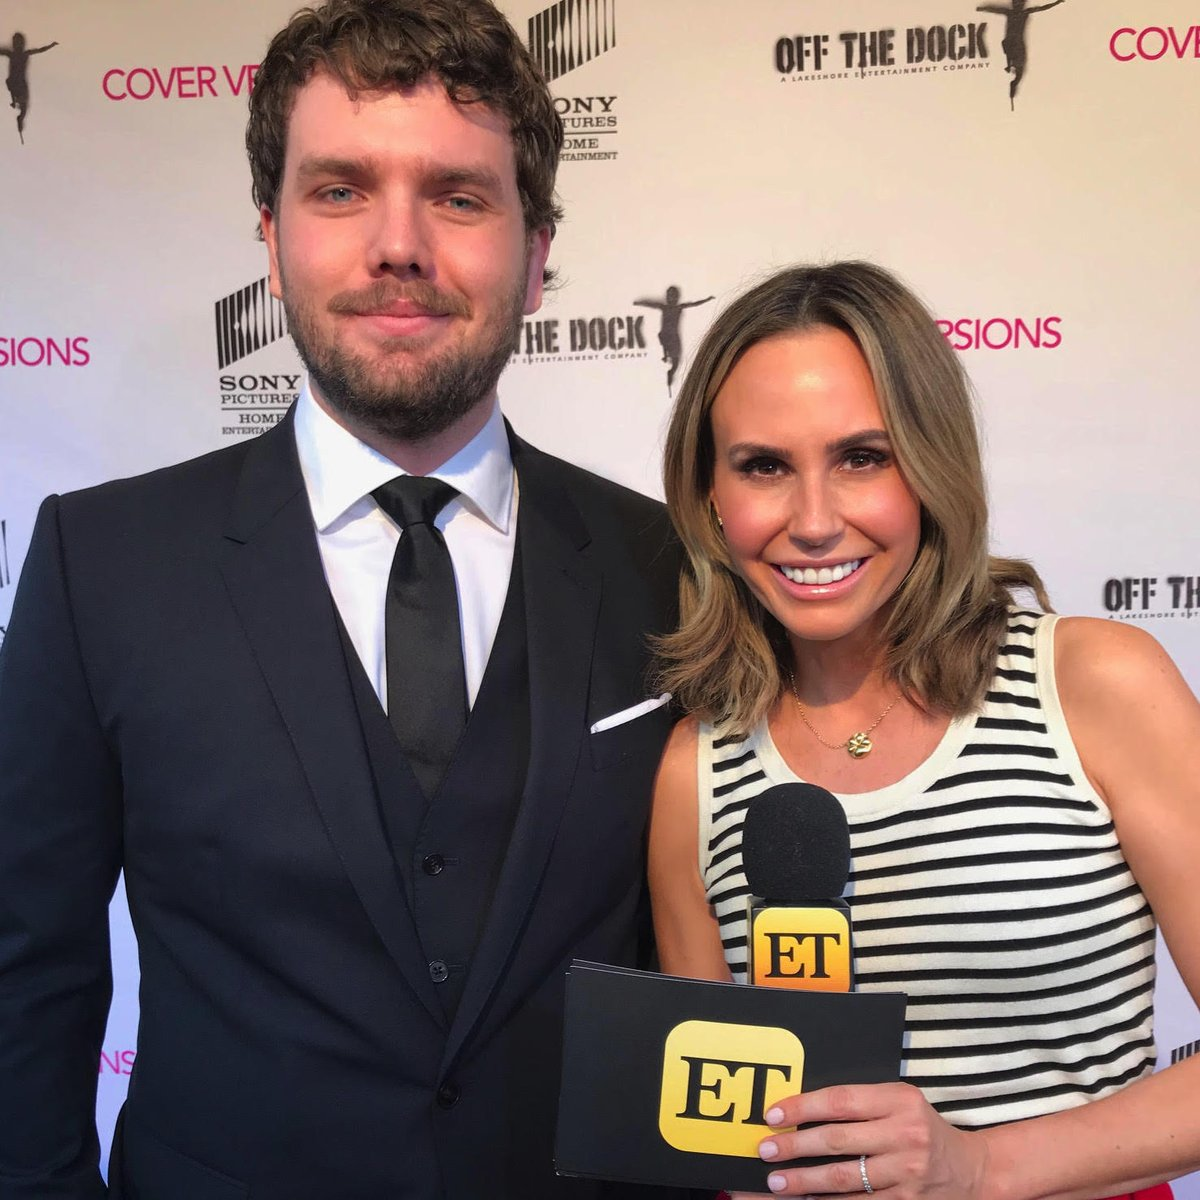 Tonight on ET, @KeltieKnight chats with @austinswift7 and @DebbyRyan at the premiere of #CoverVersionsMovie!